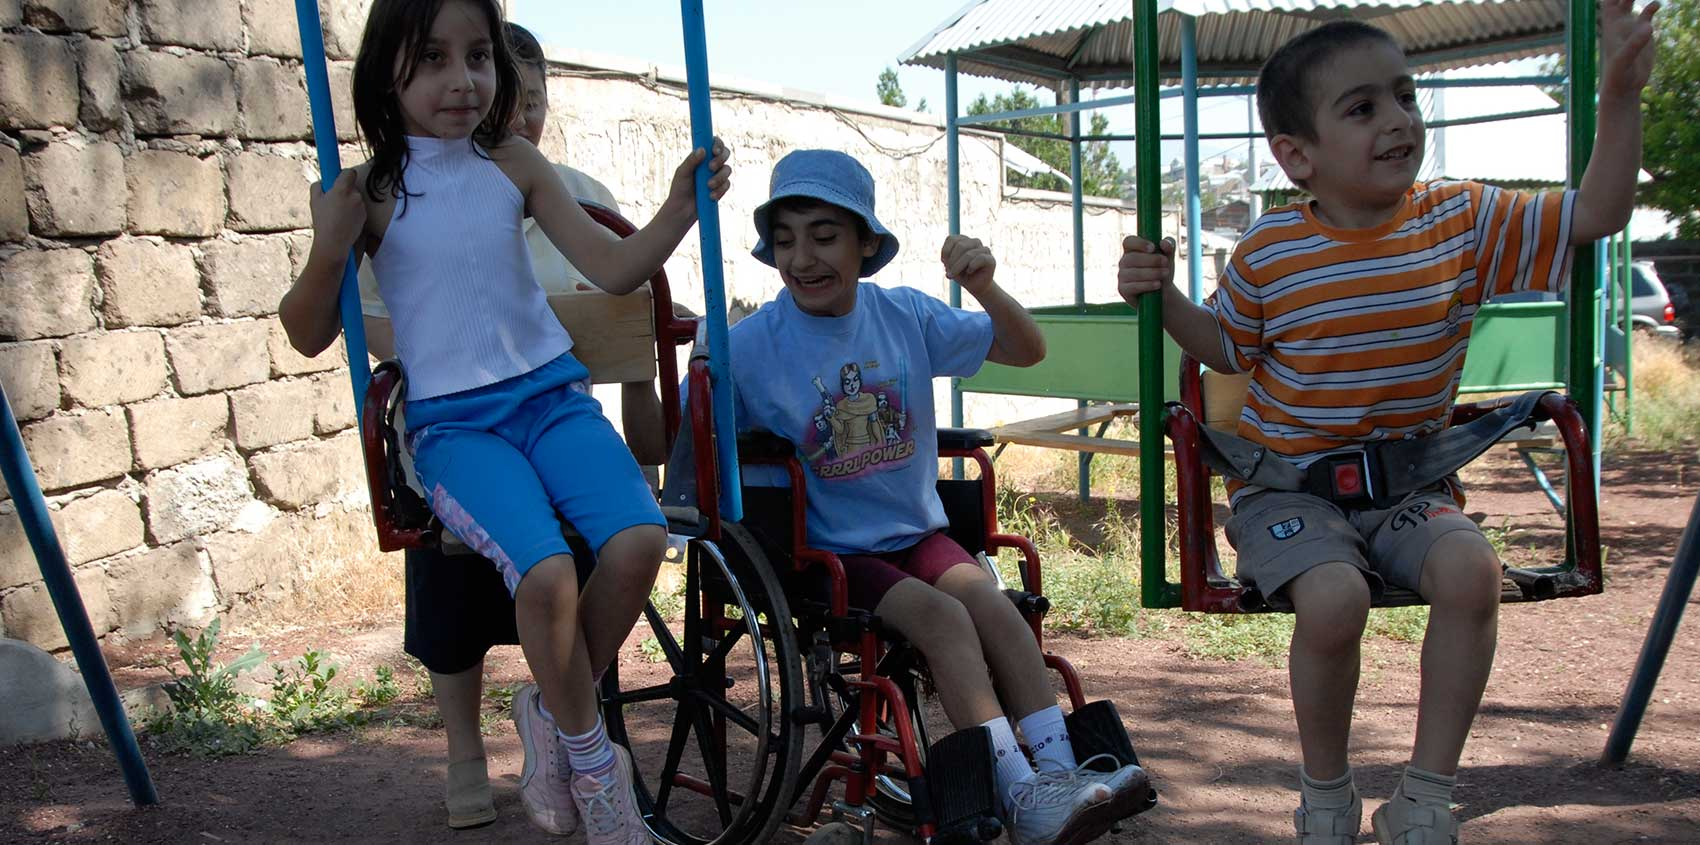 Photo of children with disabilities playing on a swing set.